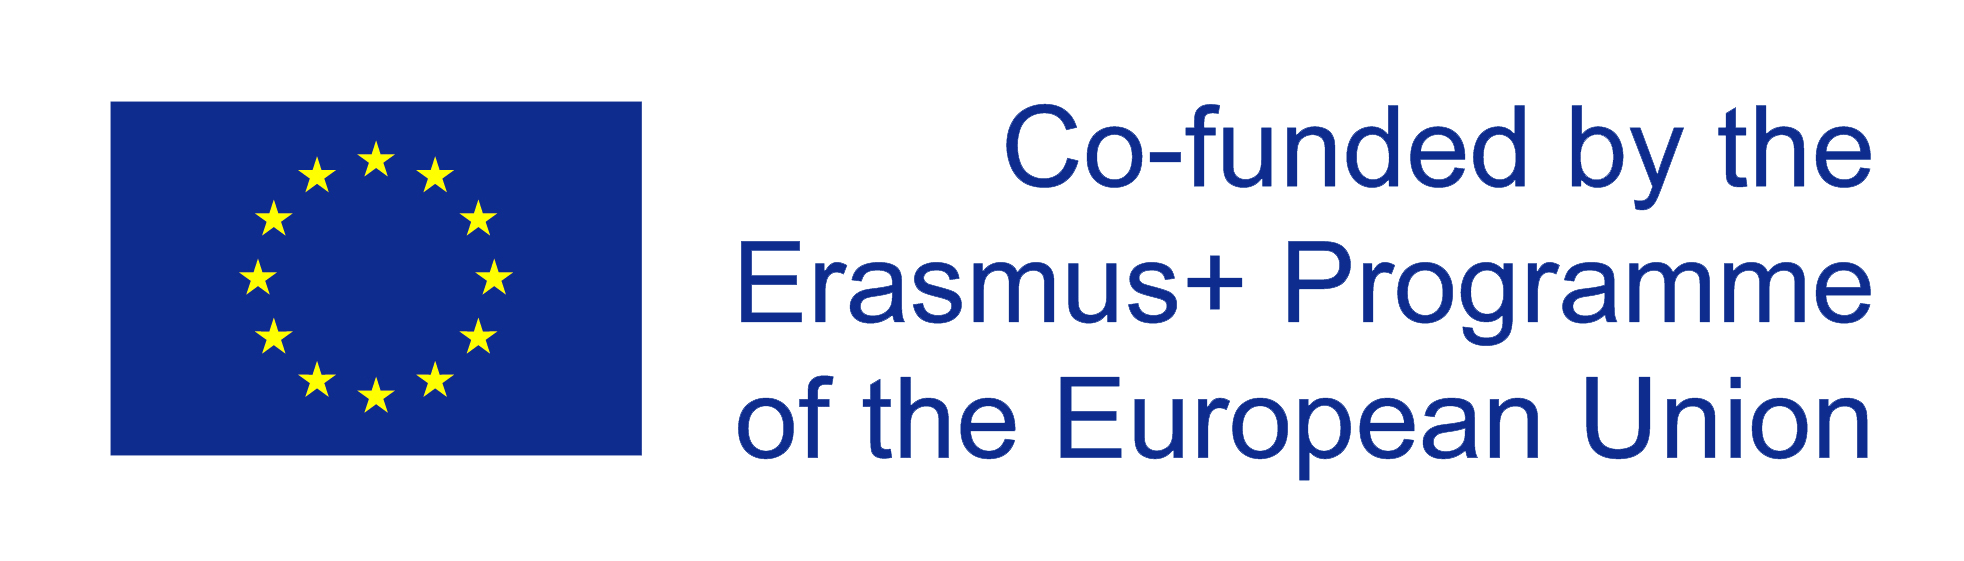 Erasmus+ Co-funded (erasmus_plus_co-funded.png)